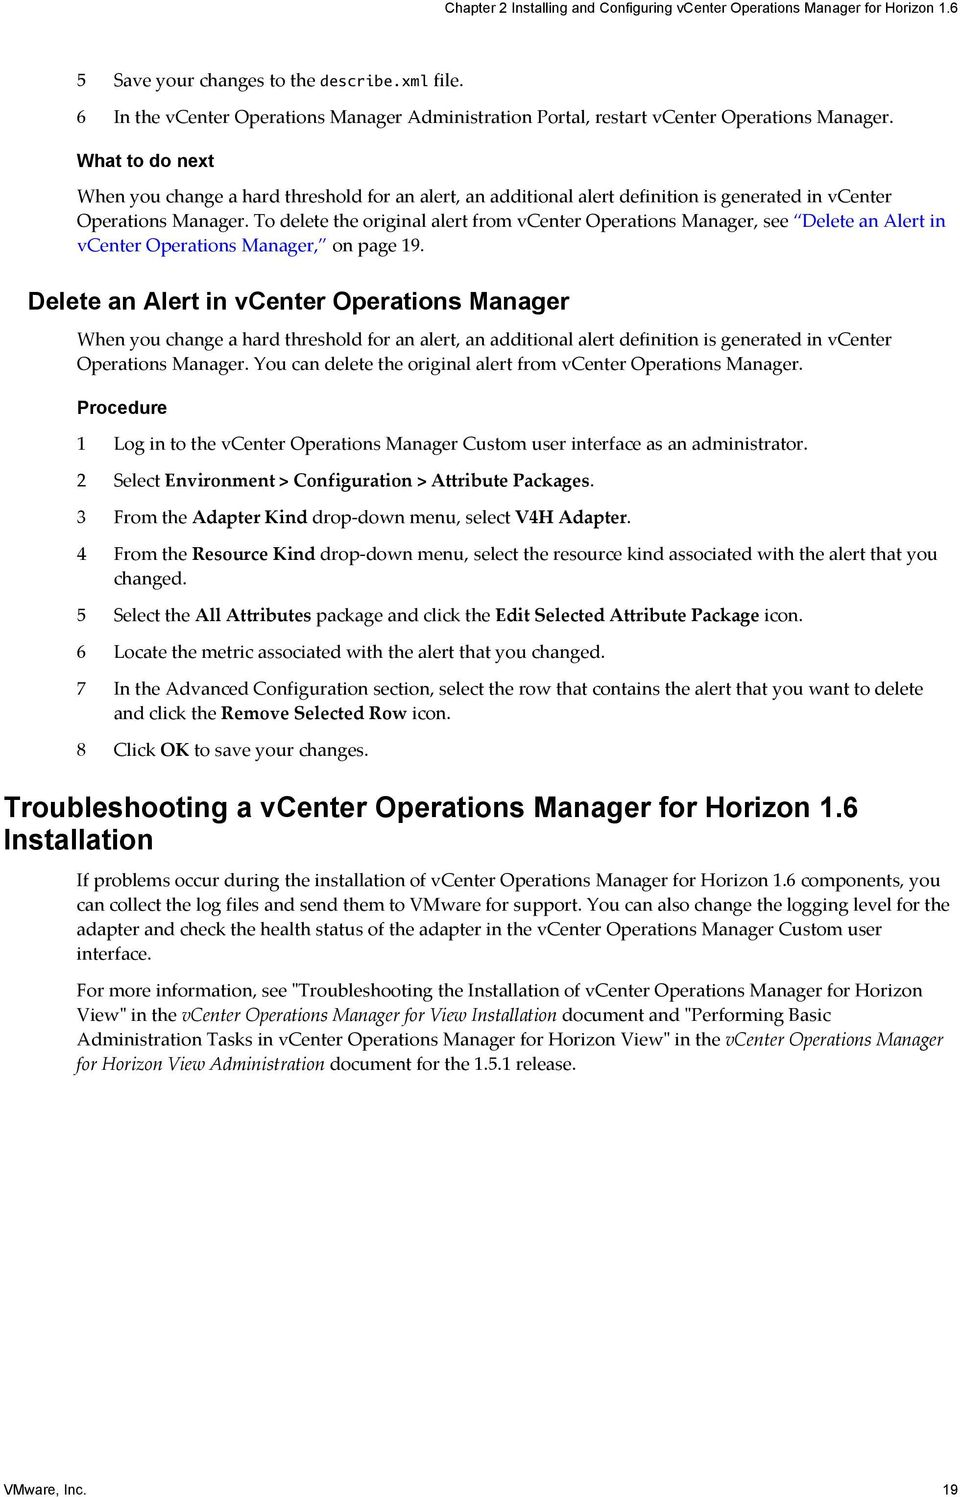 What to do next When you change a hard threshold for an alert, an additional alert definition is generated in vcenter Operations Manager.